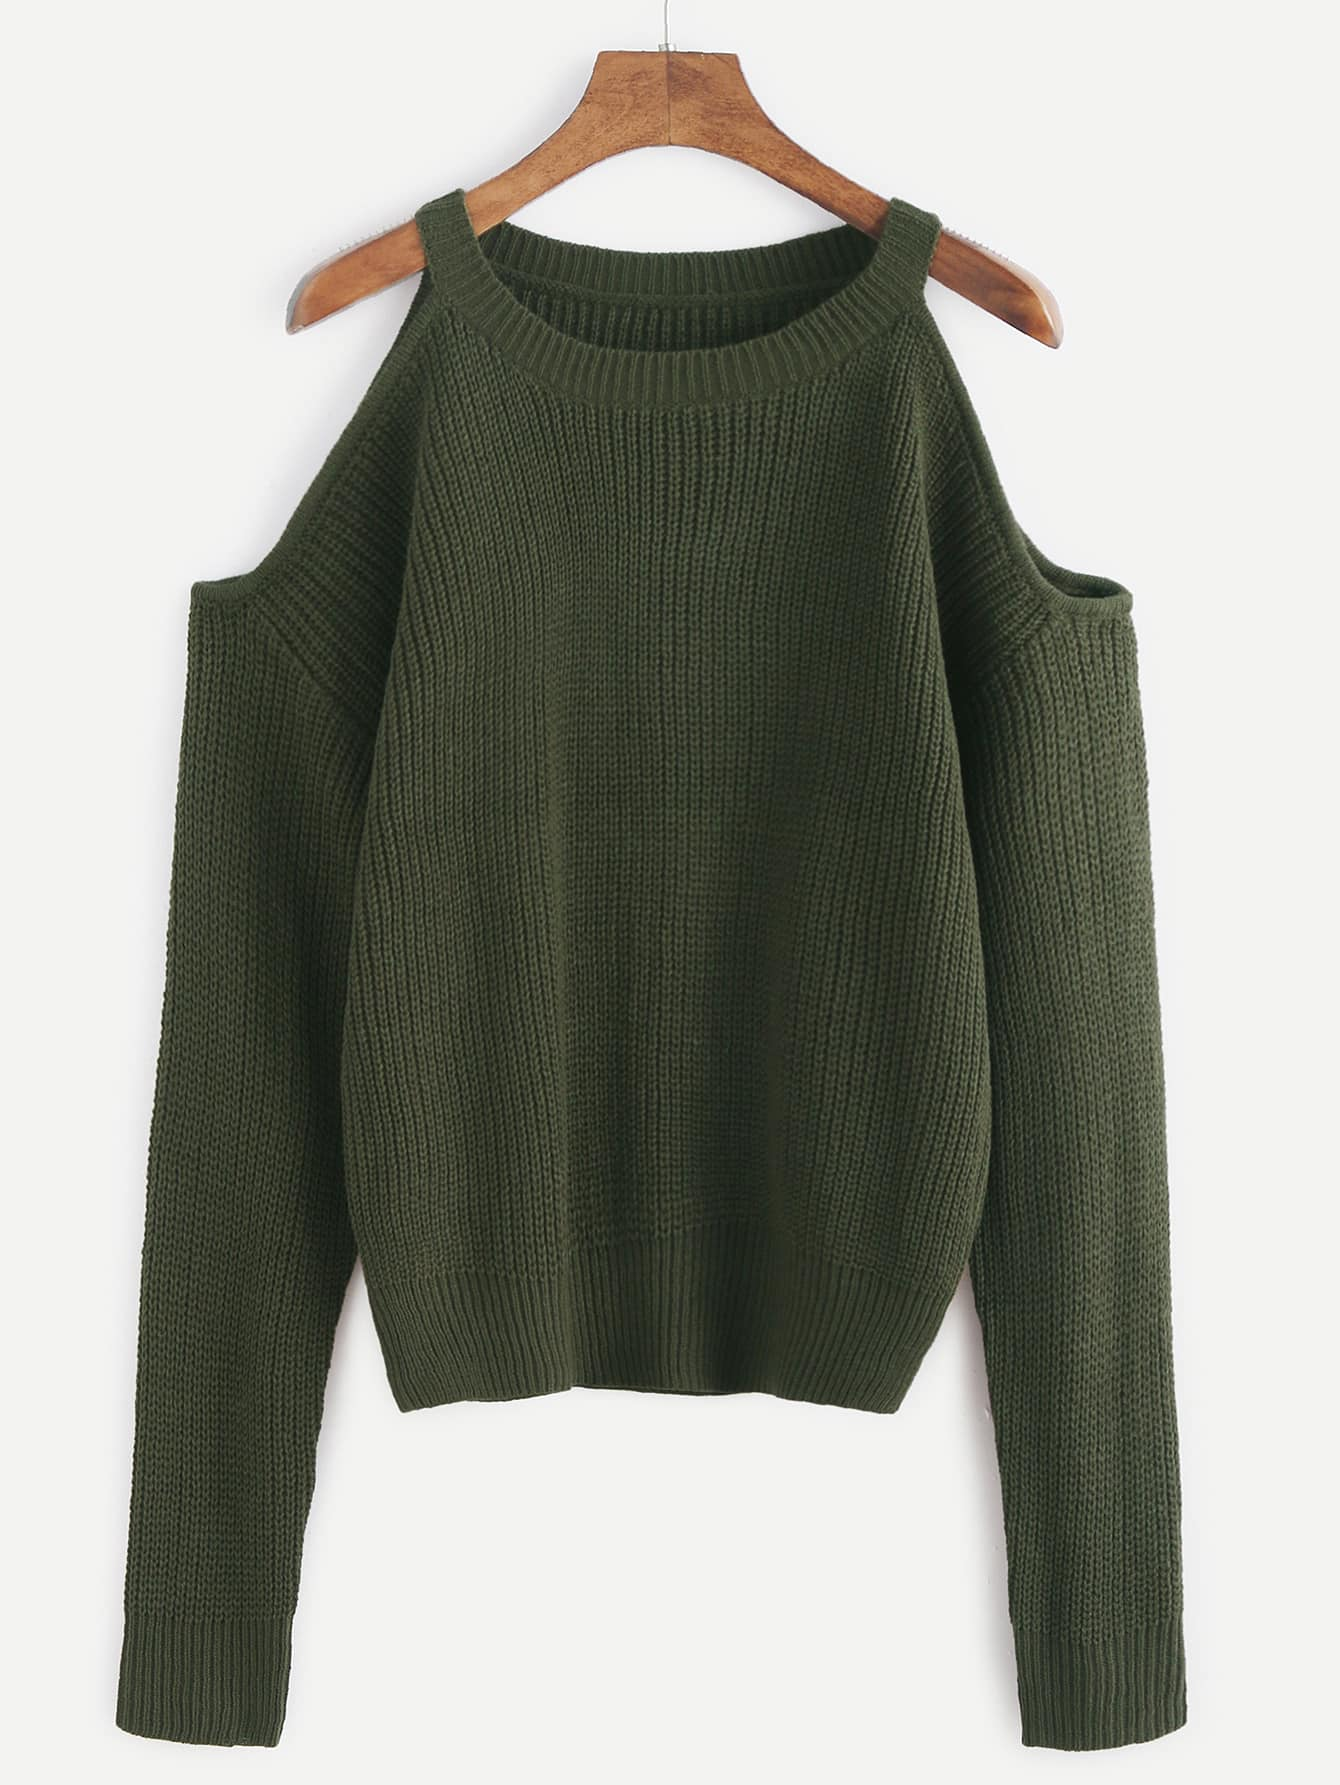 Army Green Open Shoulder Knit Sweater sweater161102301